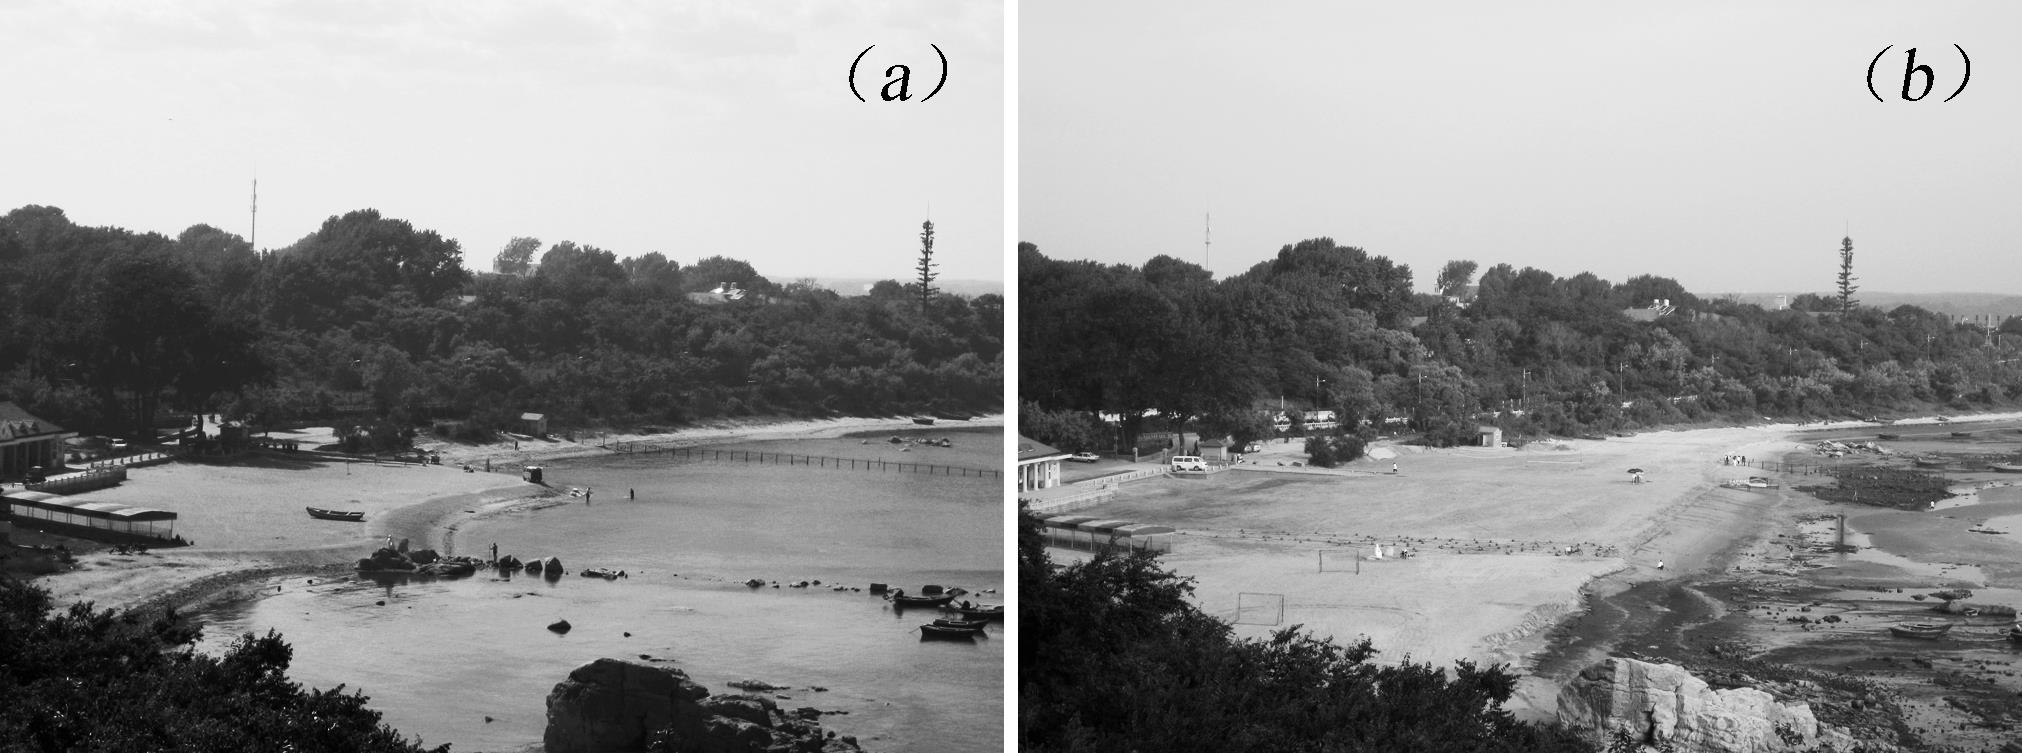 Effects of Submerged Breakwater on Hydrodynamics and Shoreline